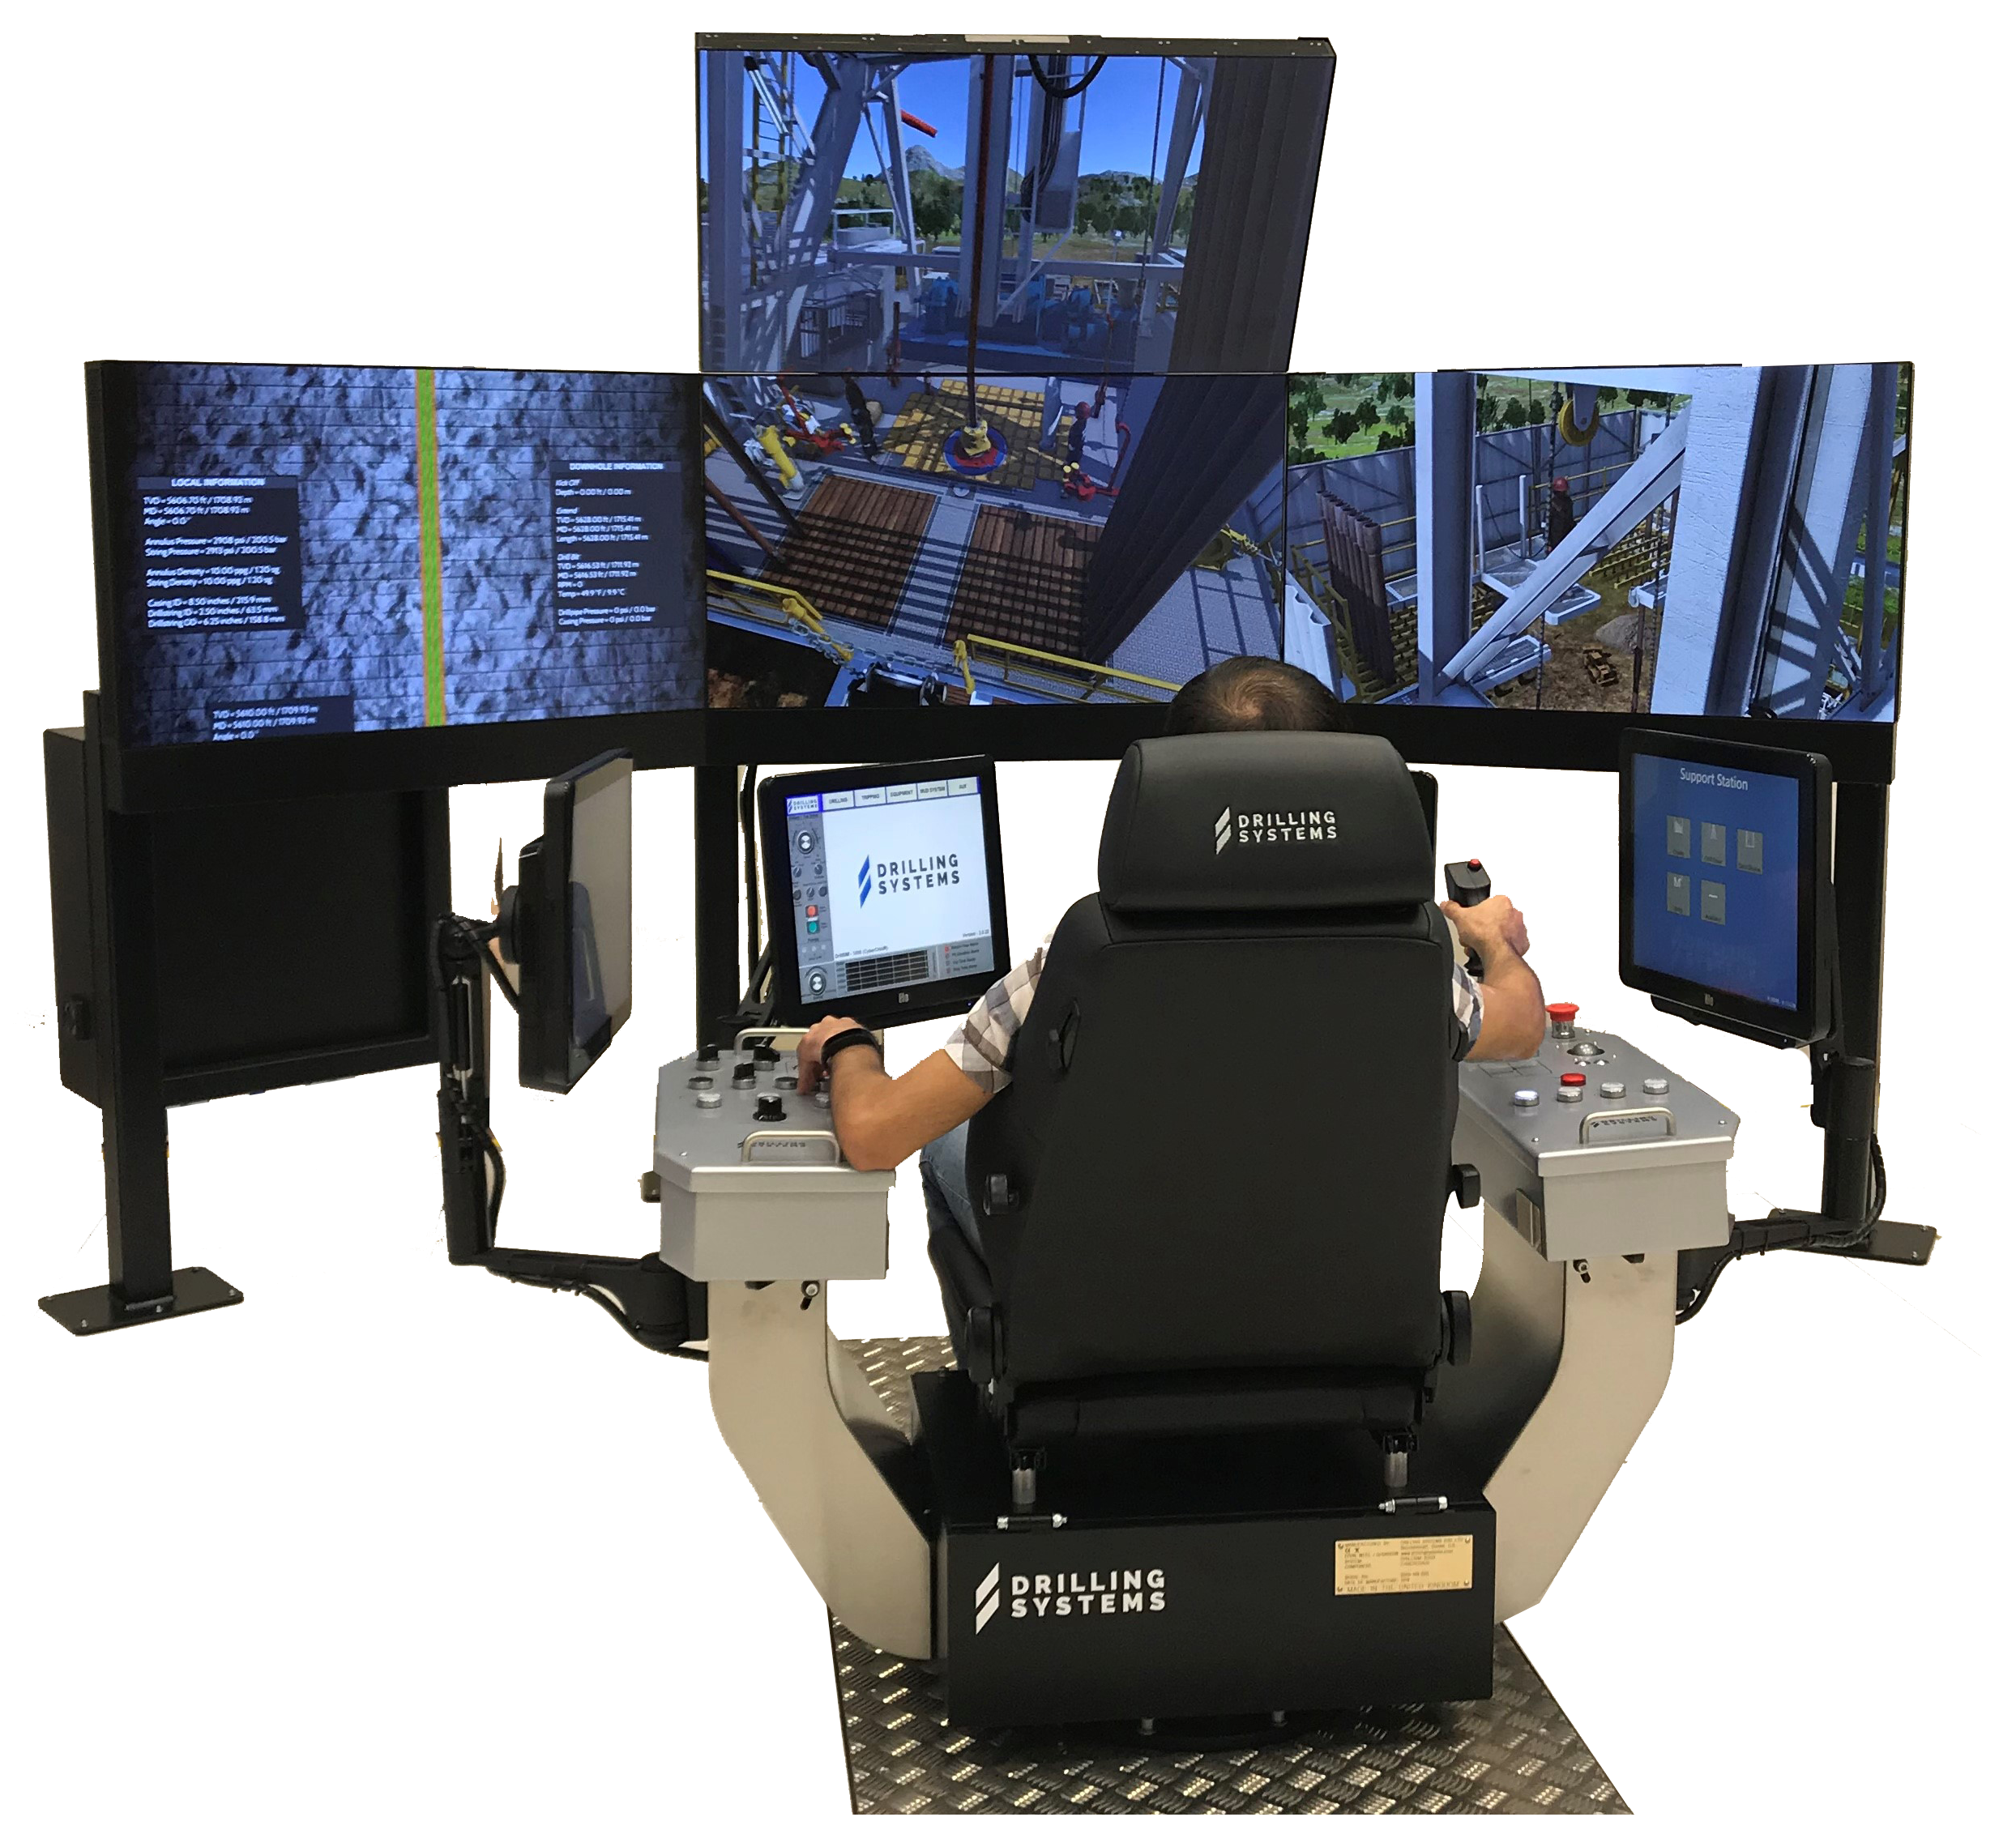 The Drilling Systems' DrillSIM:5000 Cyber Chair drilling and well control simulator